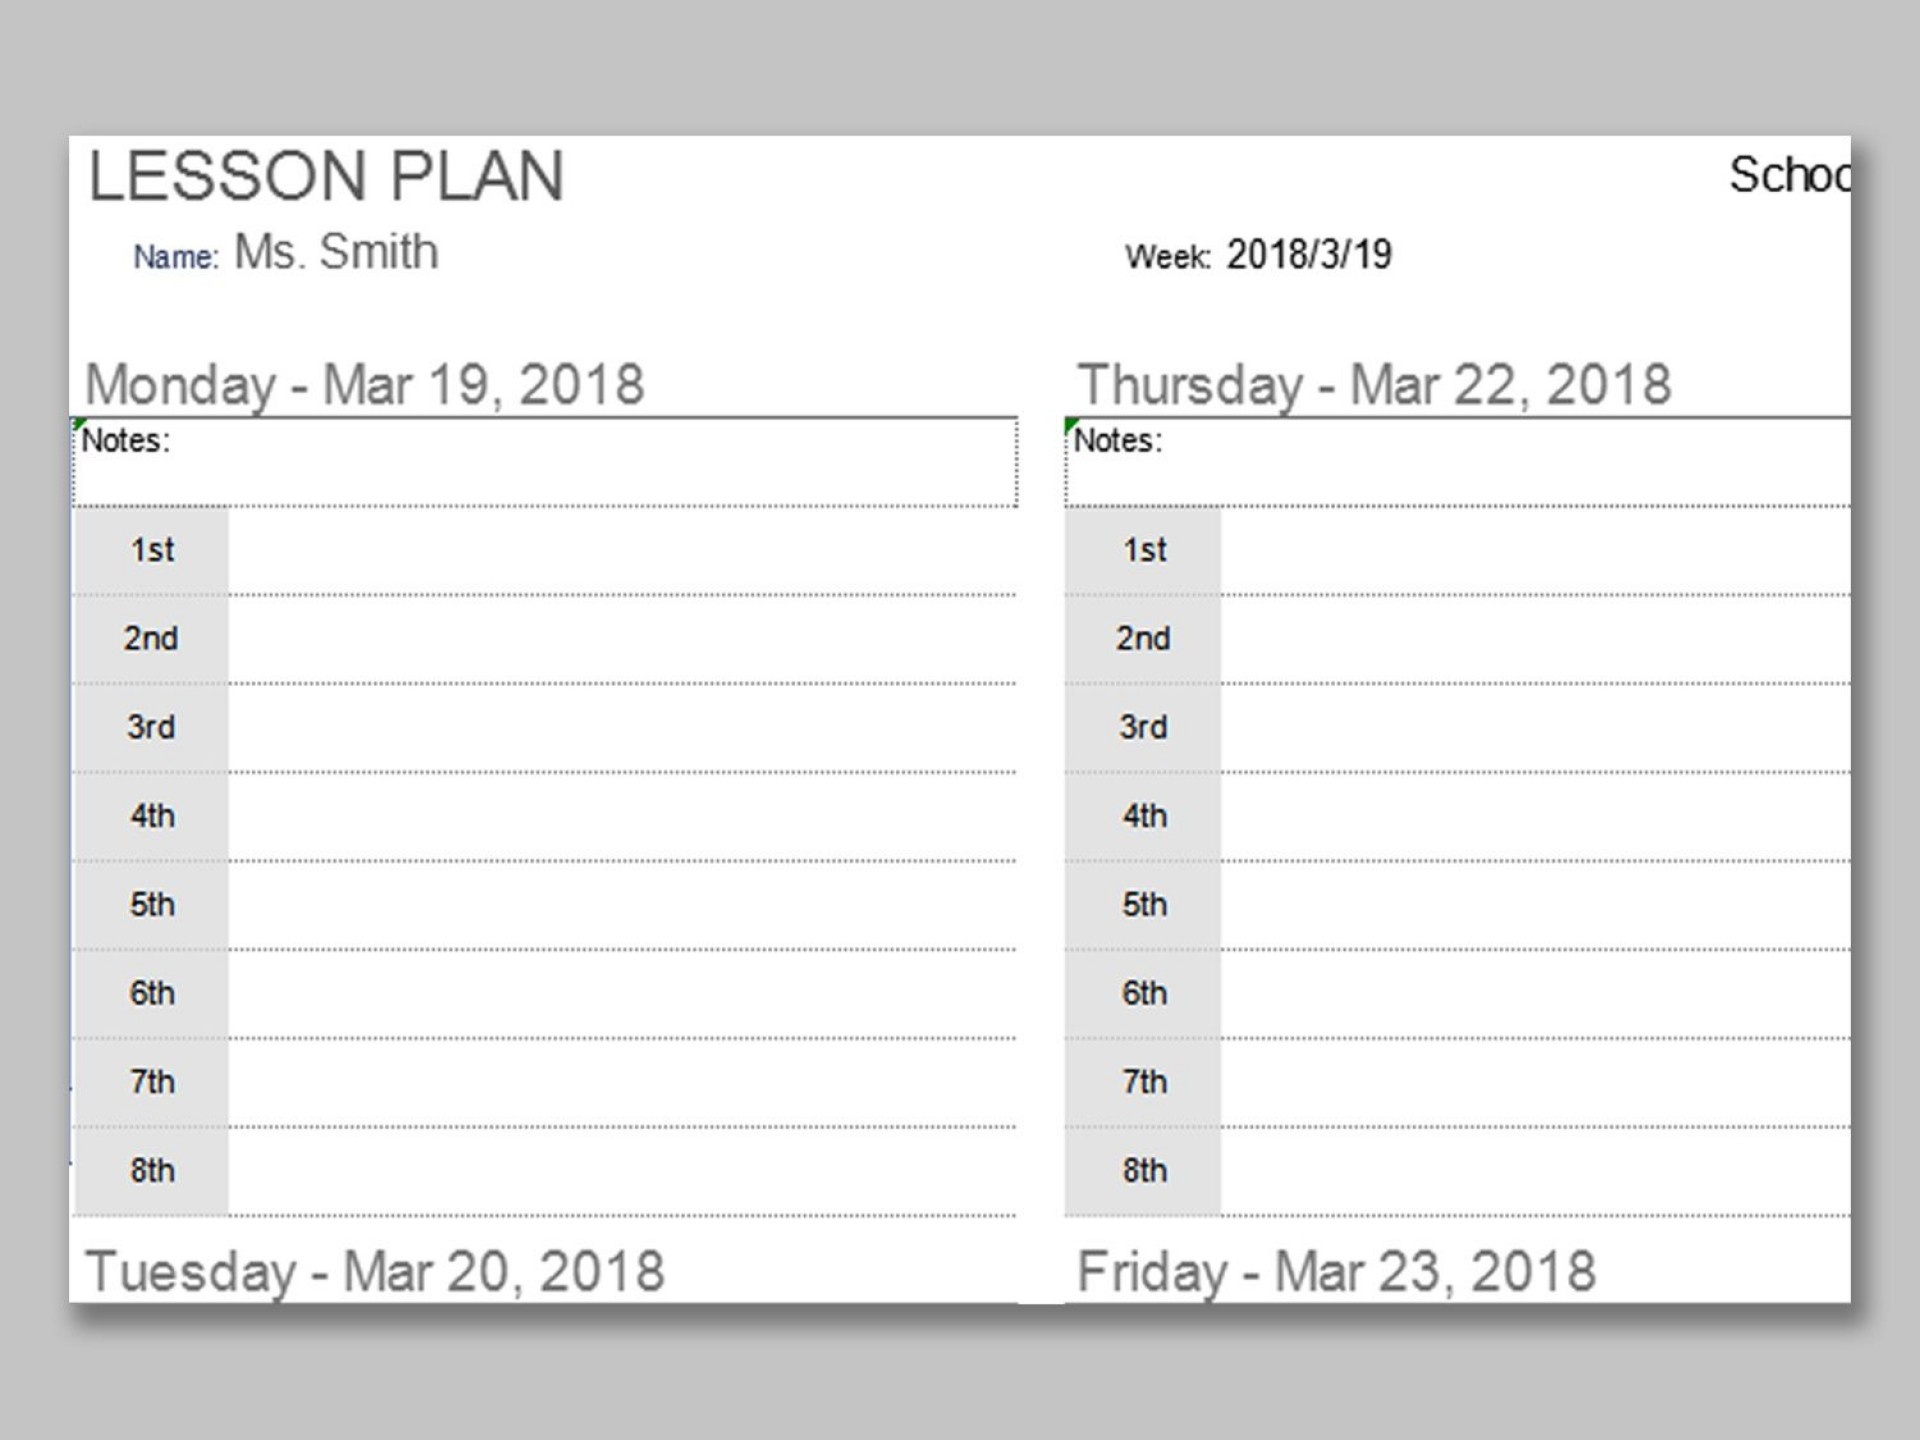 000 Awesome Printable Lesson Plan Template Free Inspiration  Preschool Weekly Pdf For Toddler1920